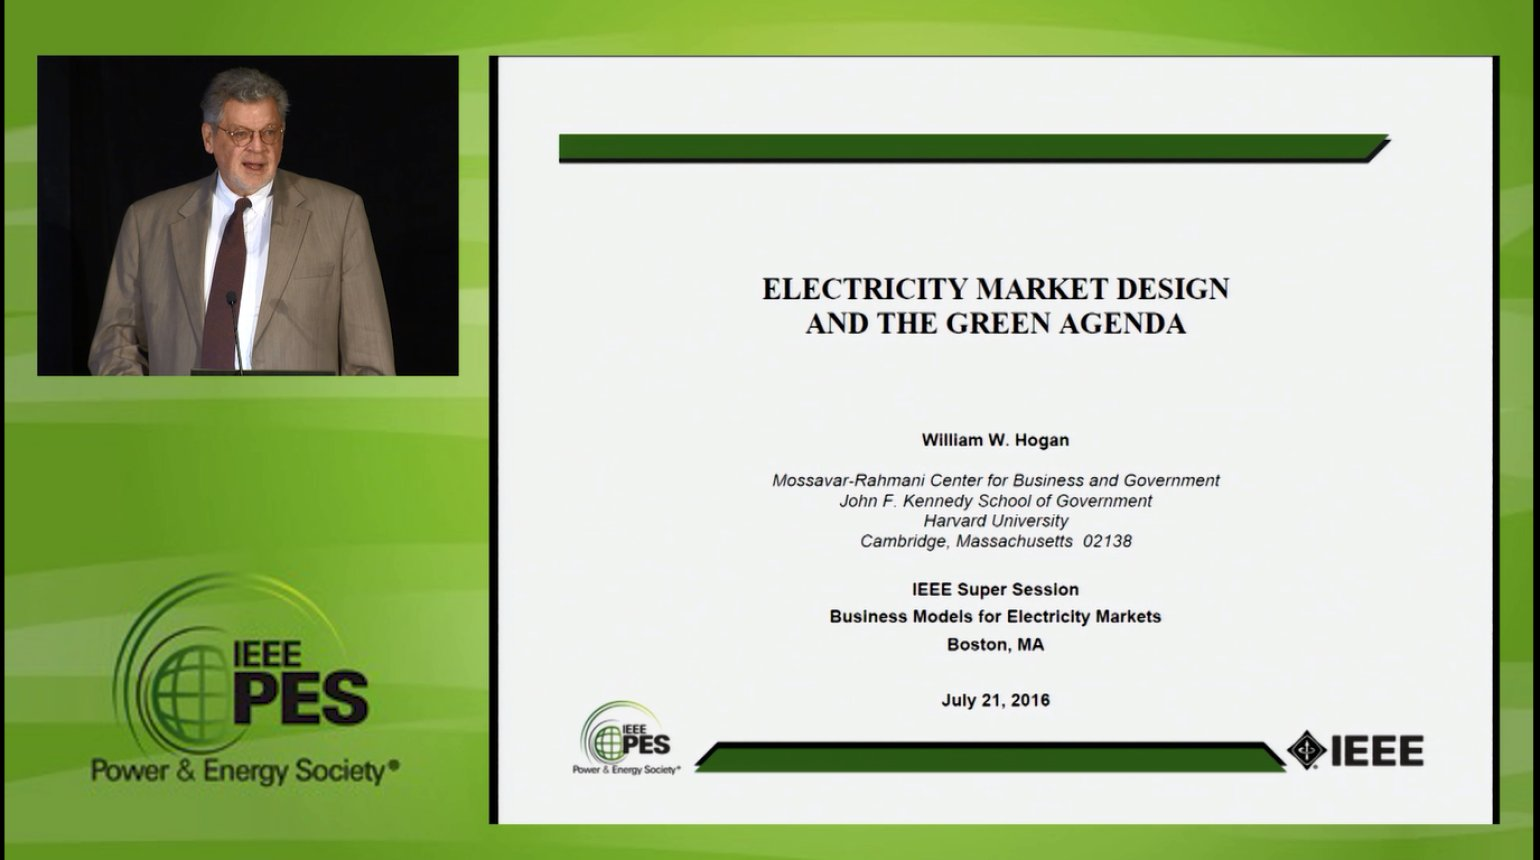 Business Models for Electricity Market - Electricity Market Design and the Green Agenda (Video)